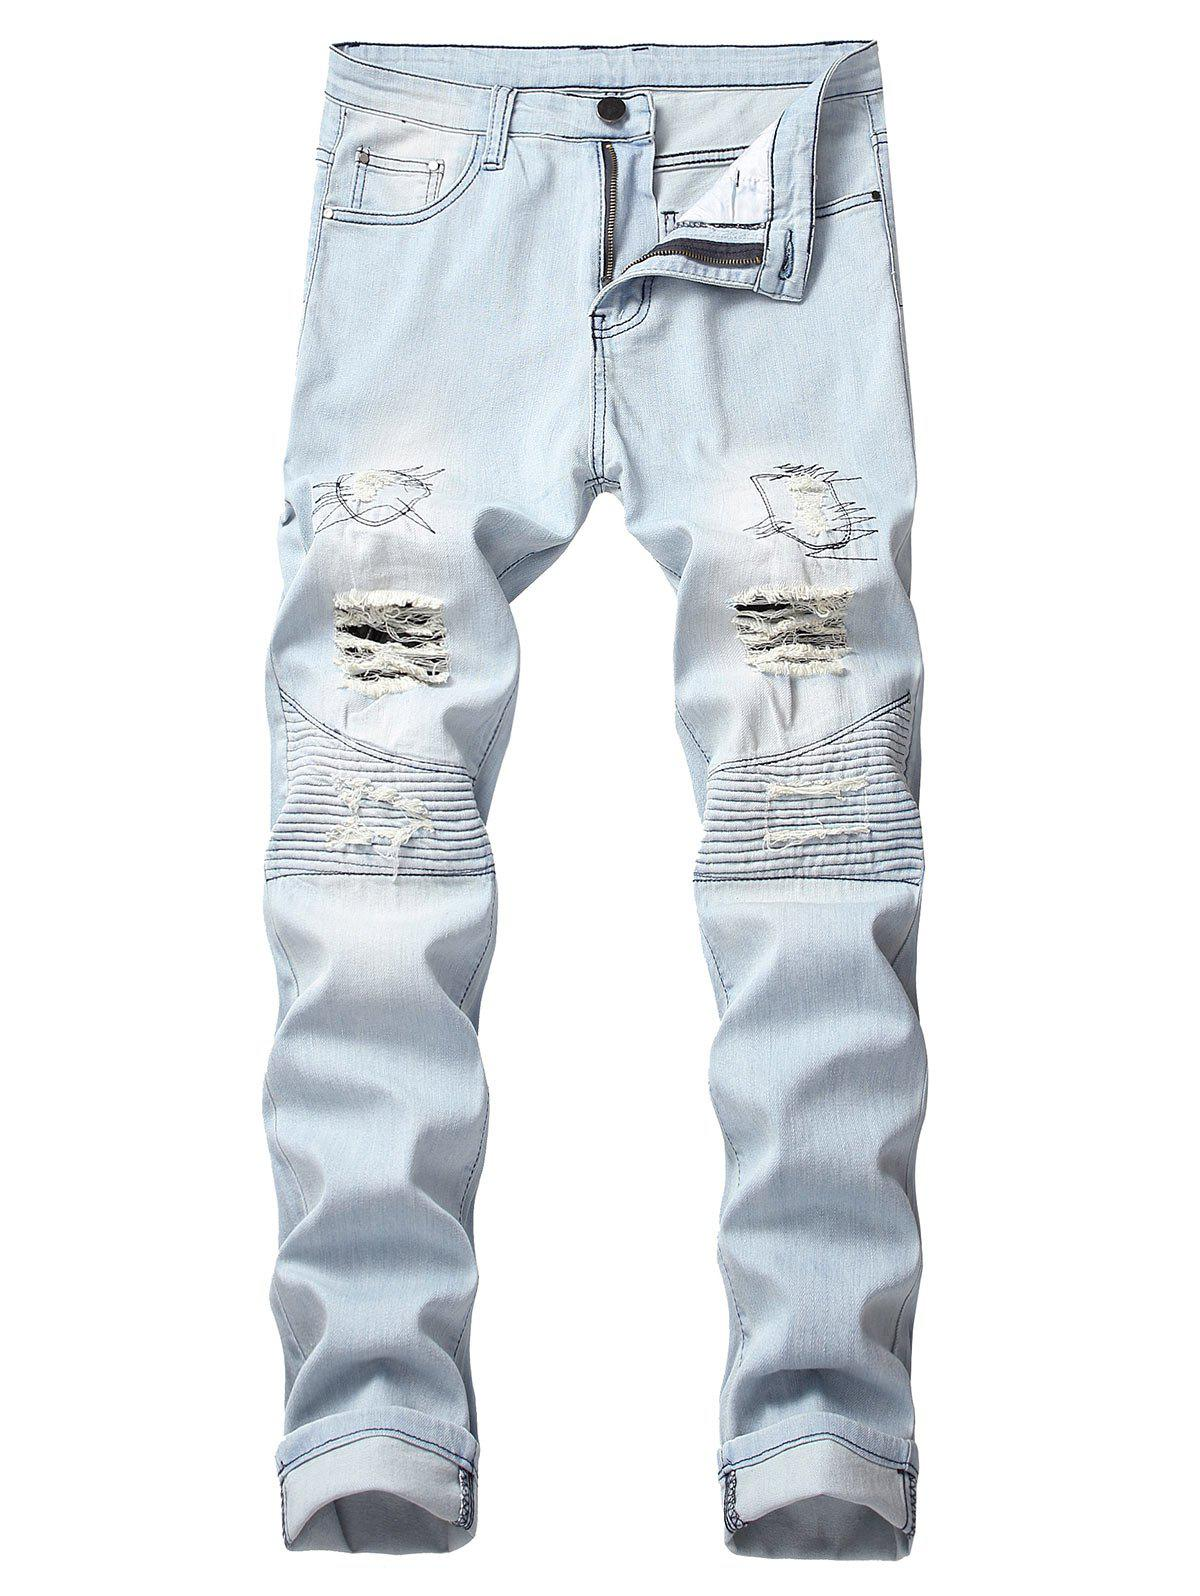 Online Ruffle Ripped Decoration Leisure Jeans